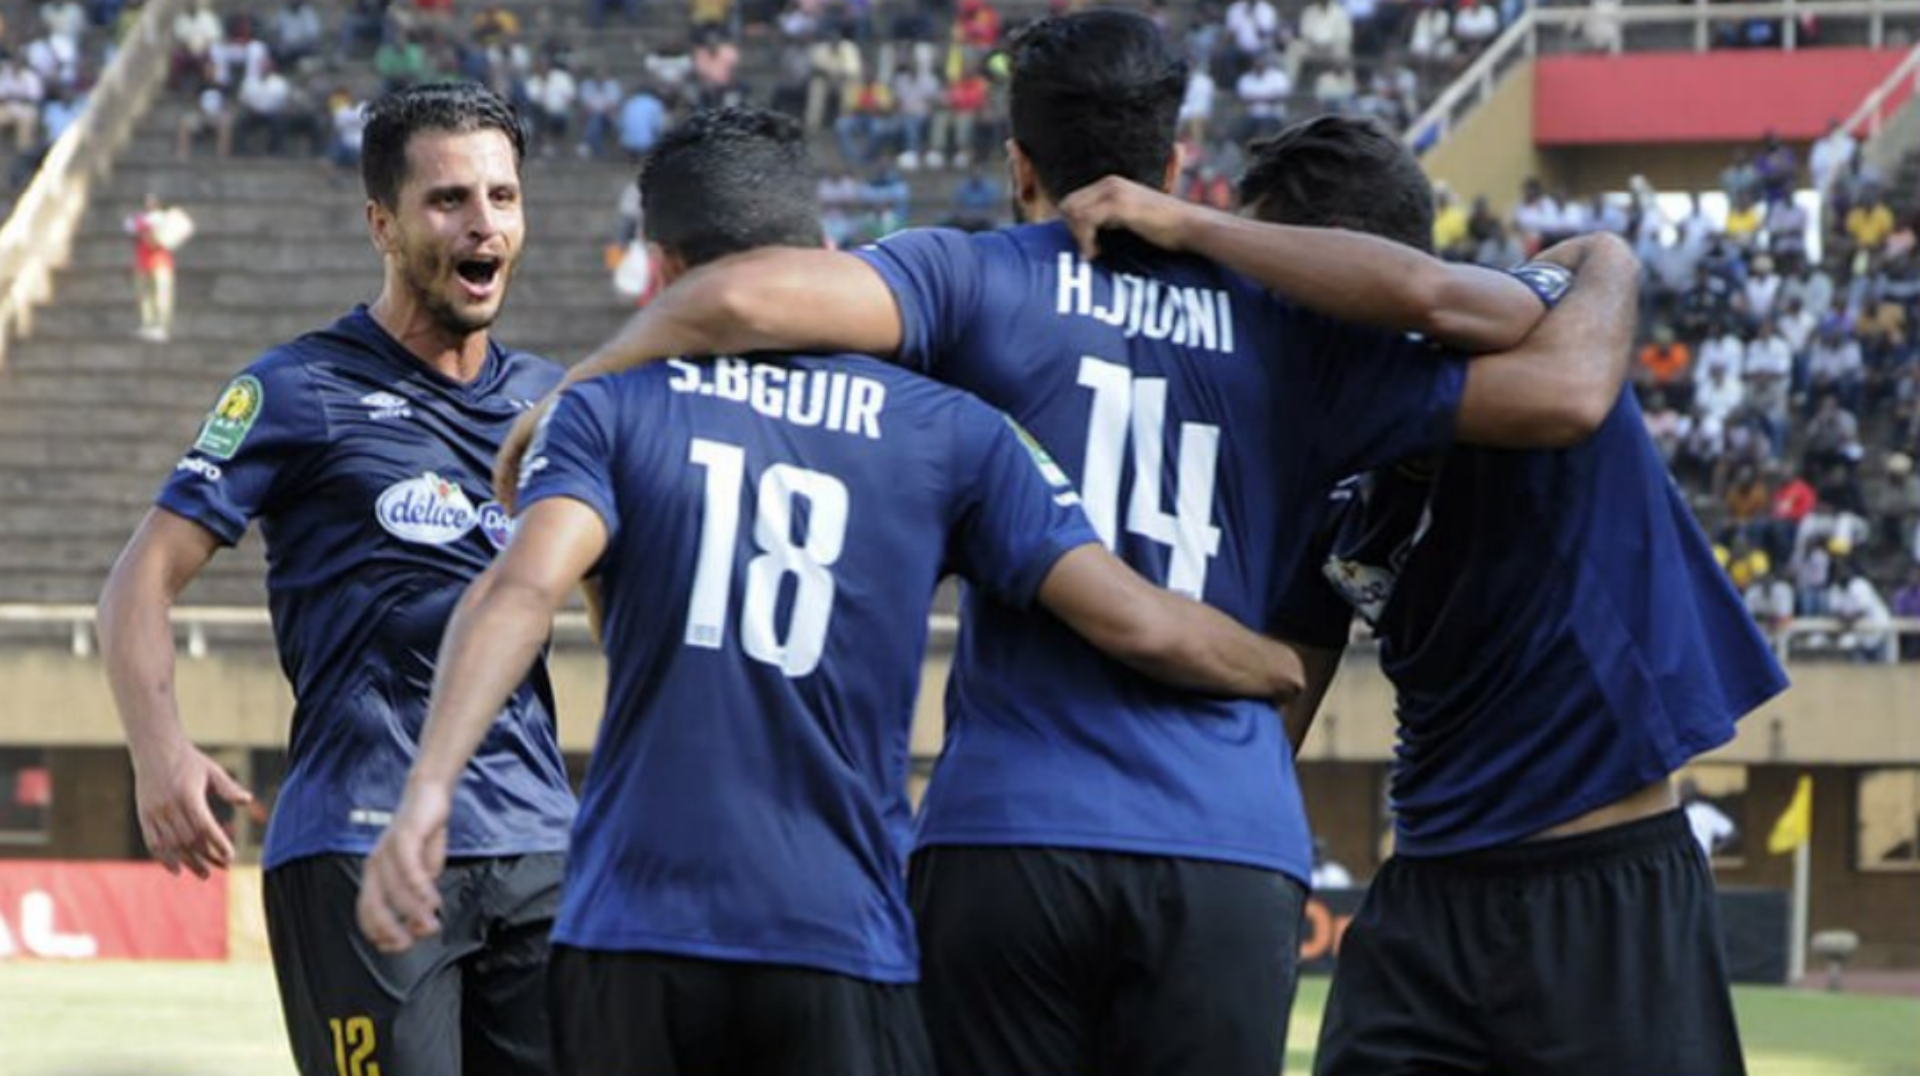 CAF Champions League Review: Holders ES Tunis salvage last-gasp draw